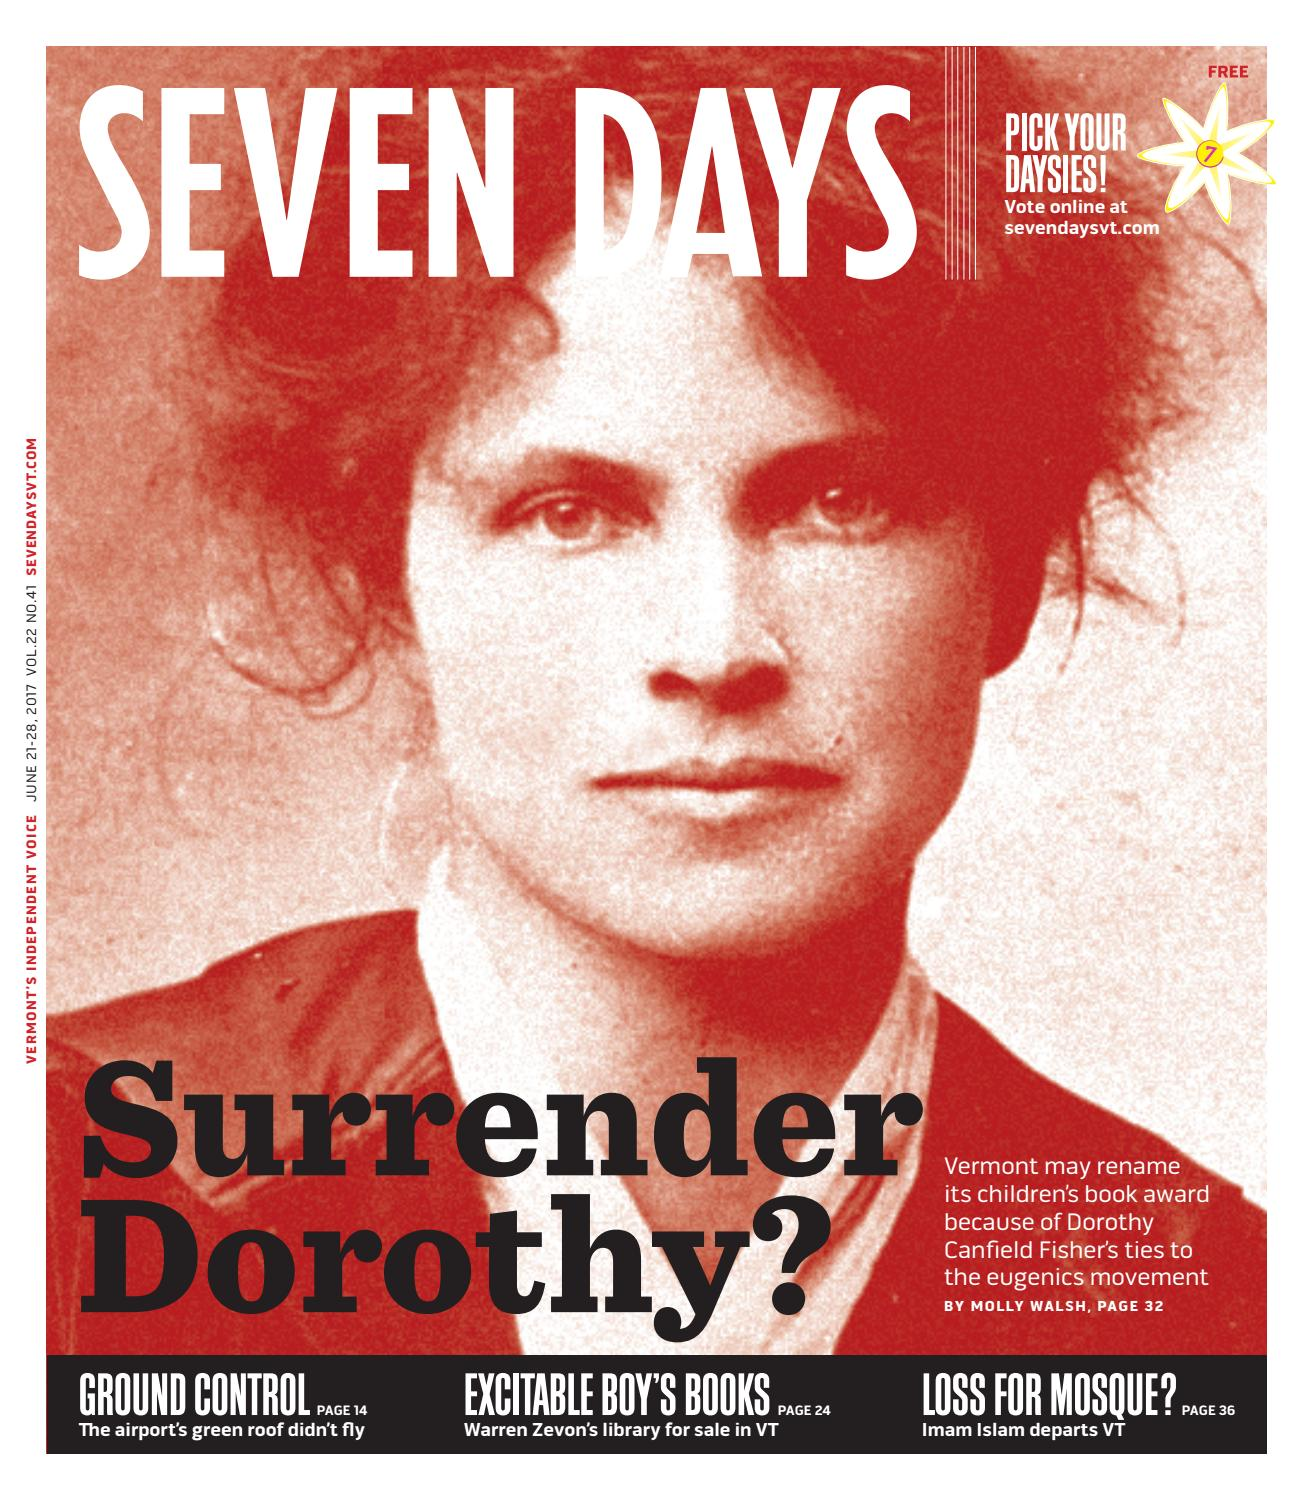 Seven days june 21 2017 by seven days issuu fandeluxe Choice Image